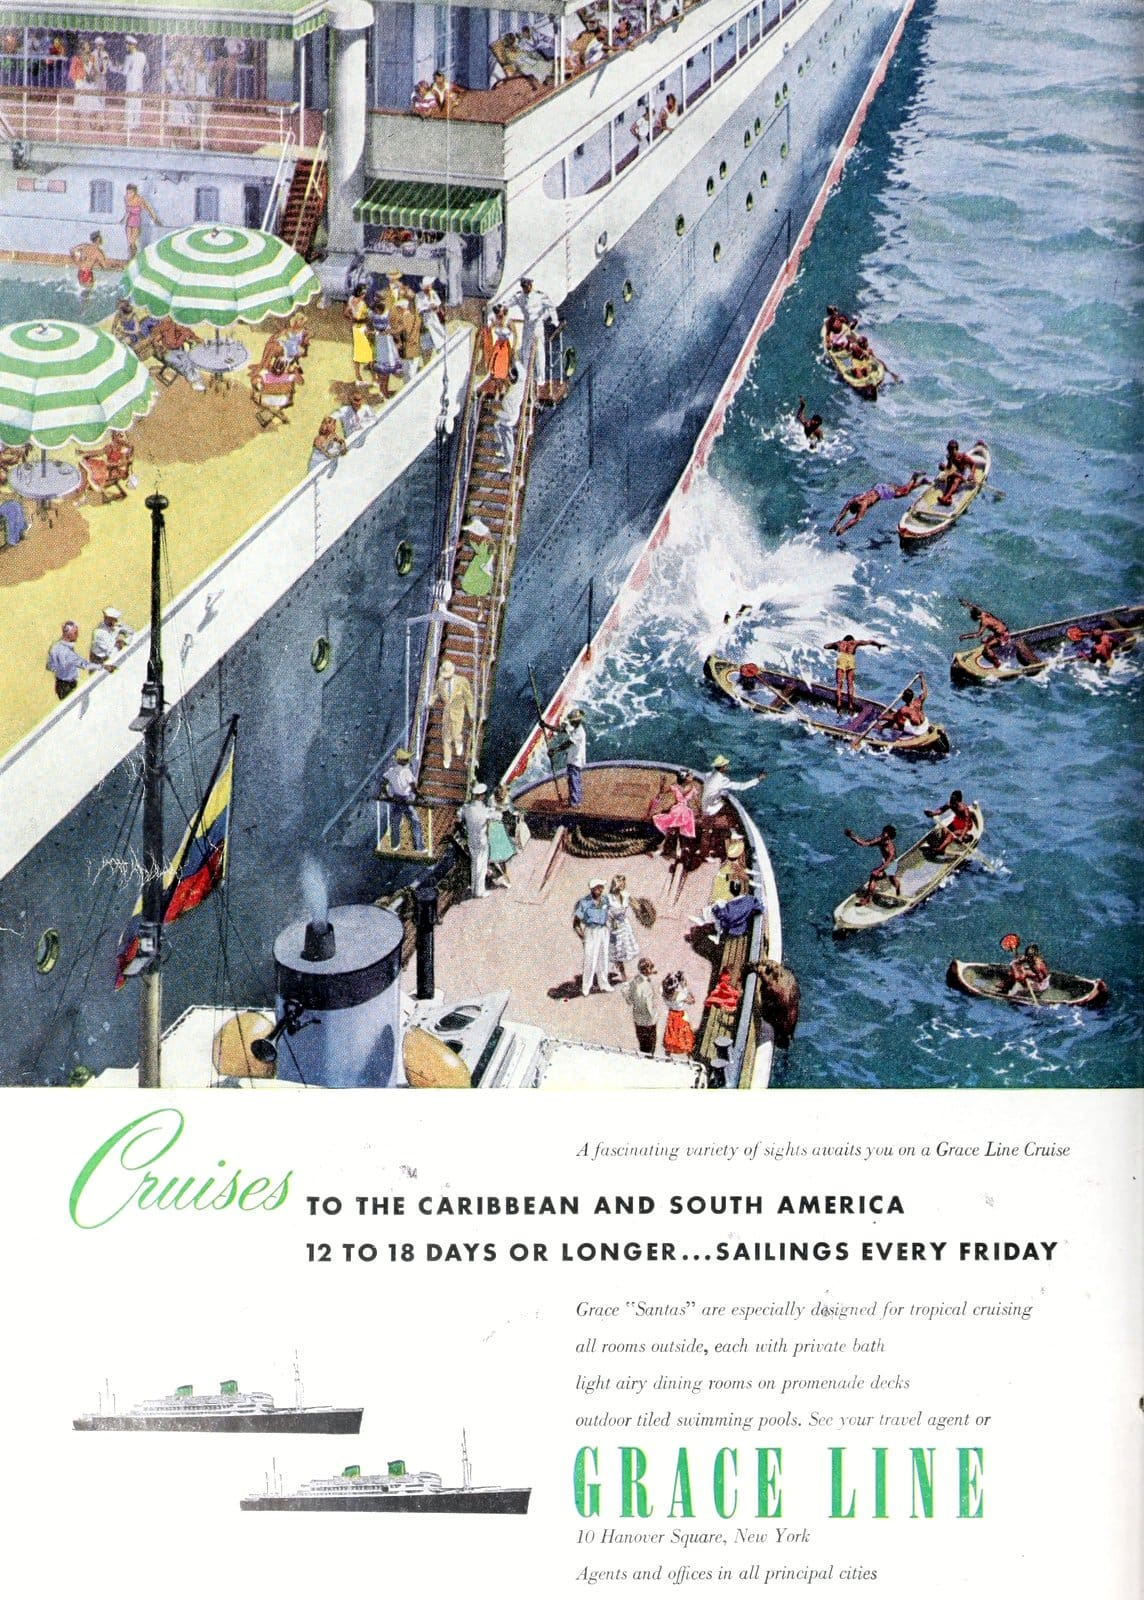 Grace line - Old cruise ships (1952)